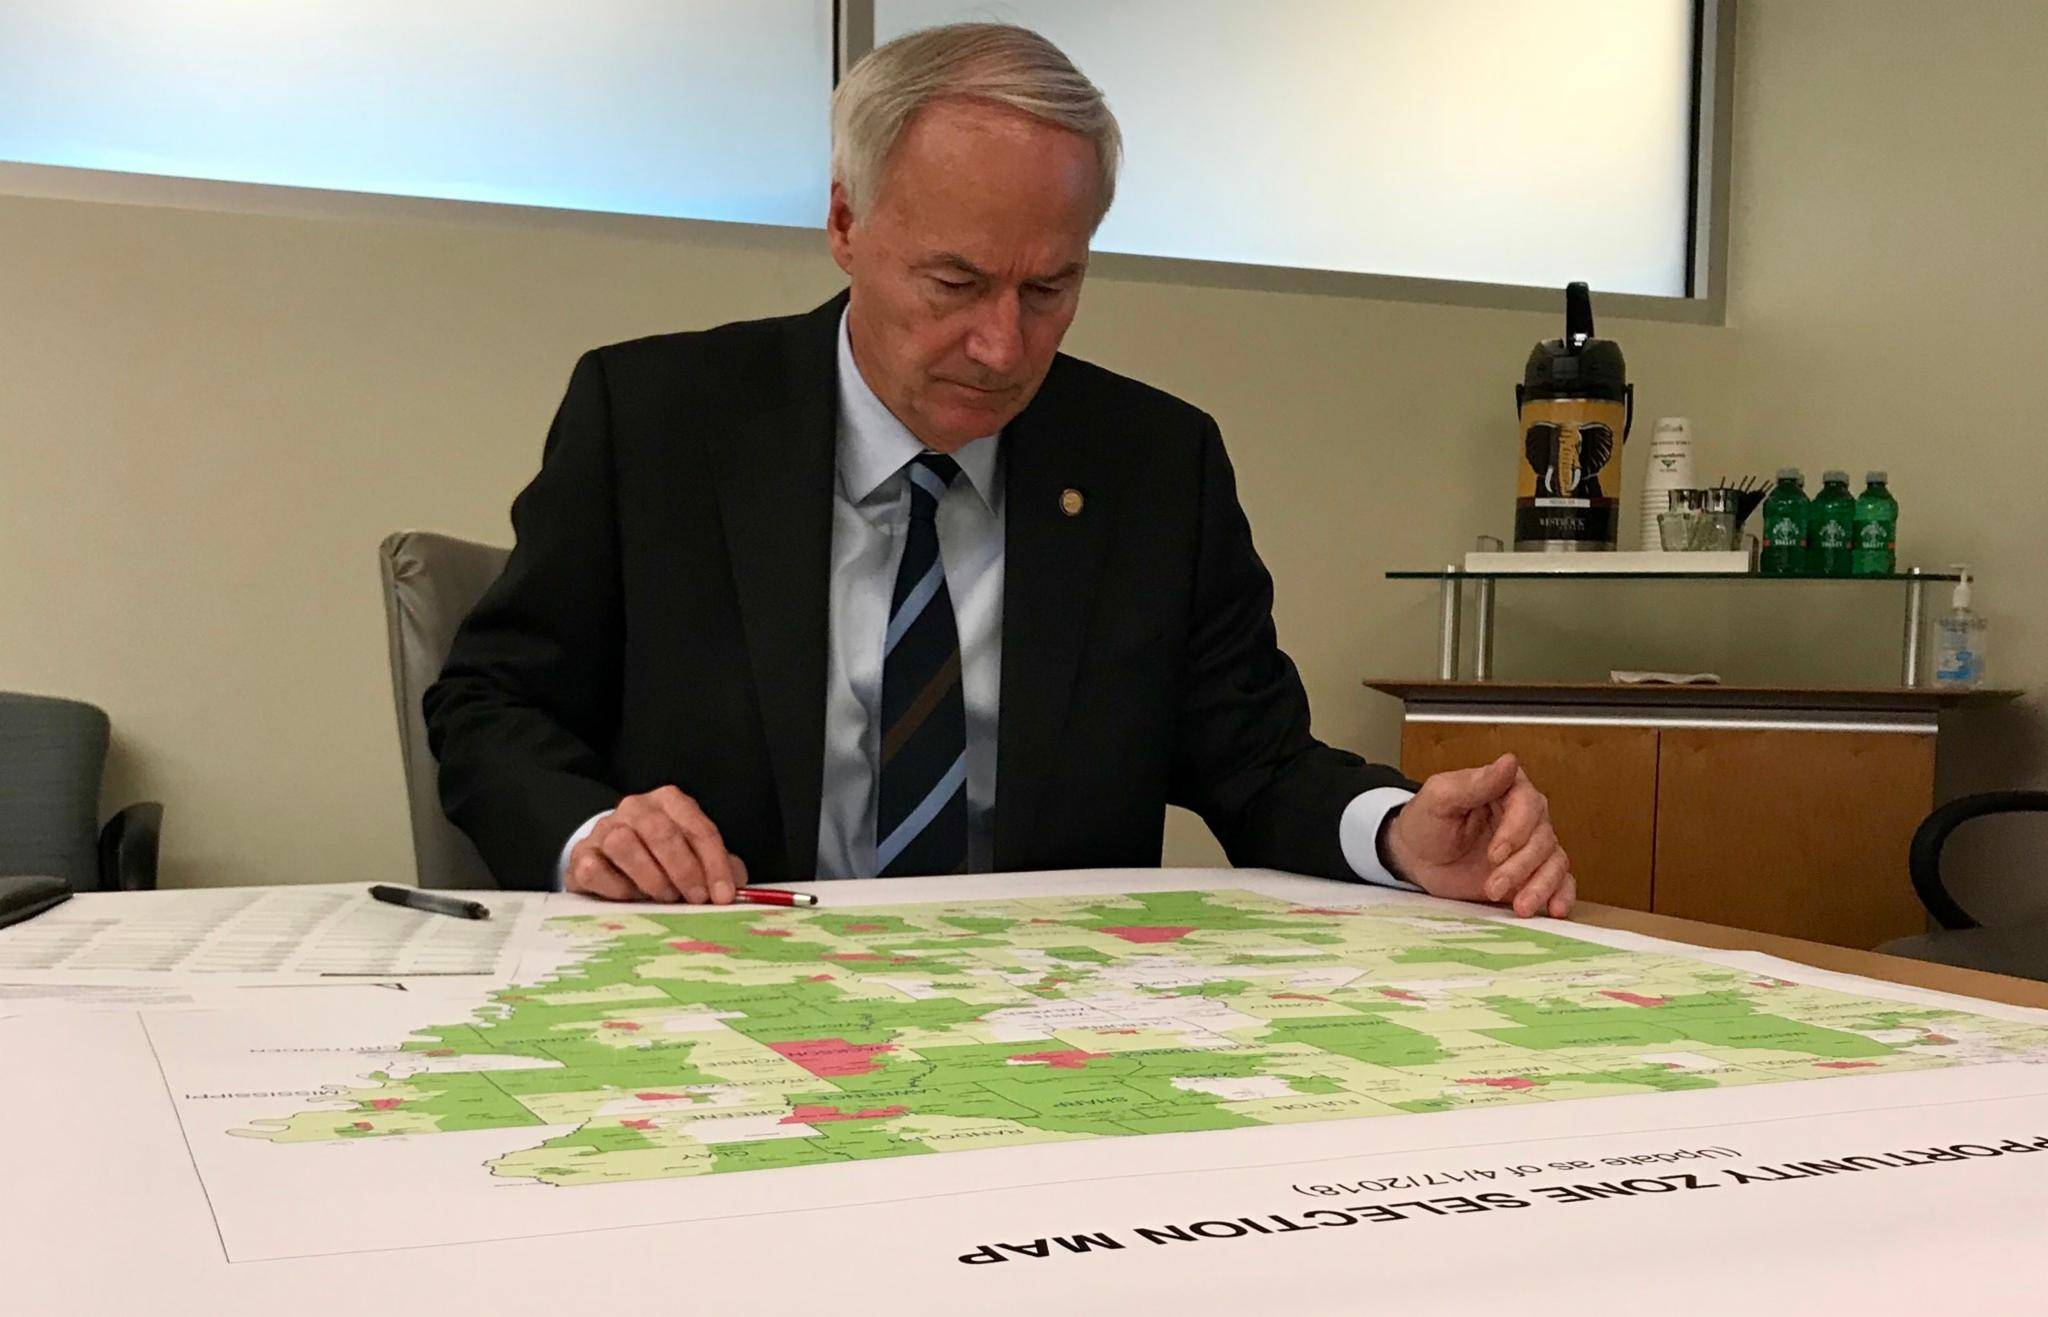 Asa Hutchinson Opportunity Zones Map